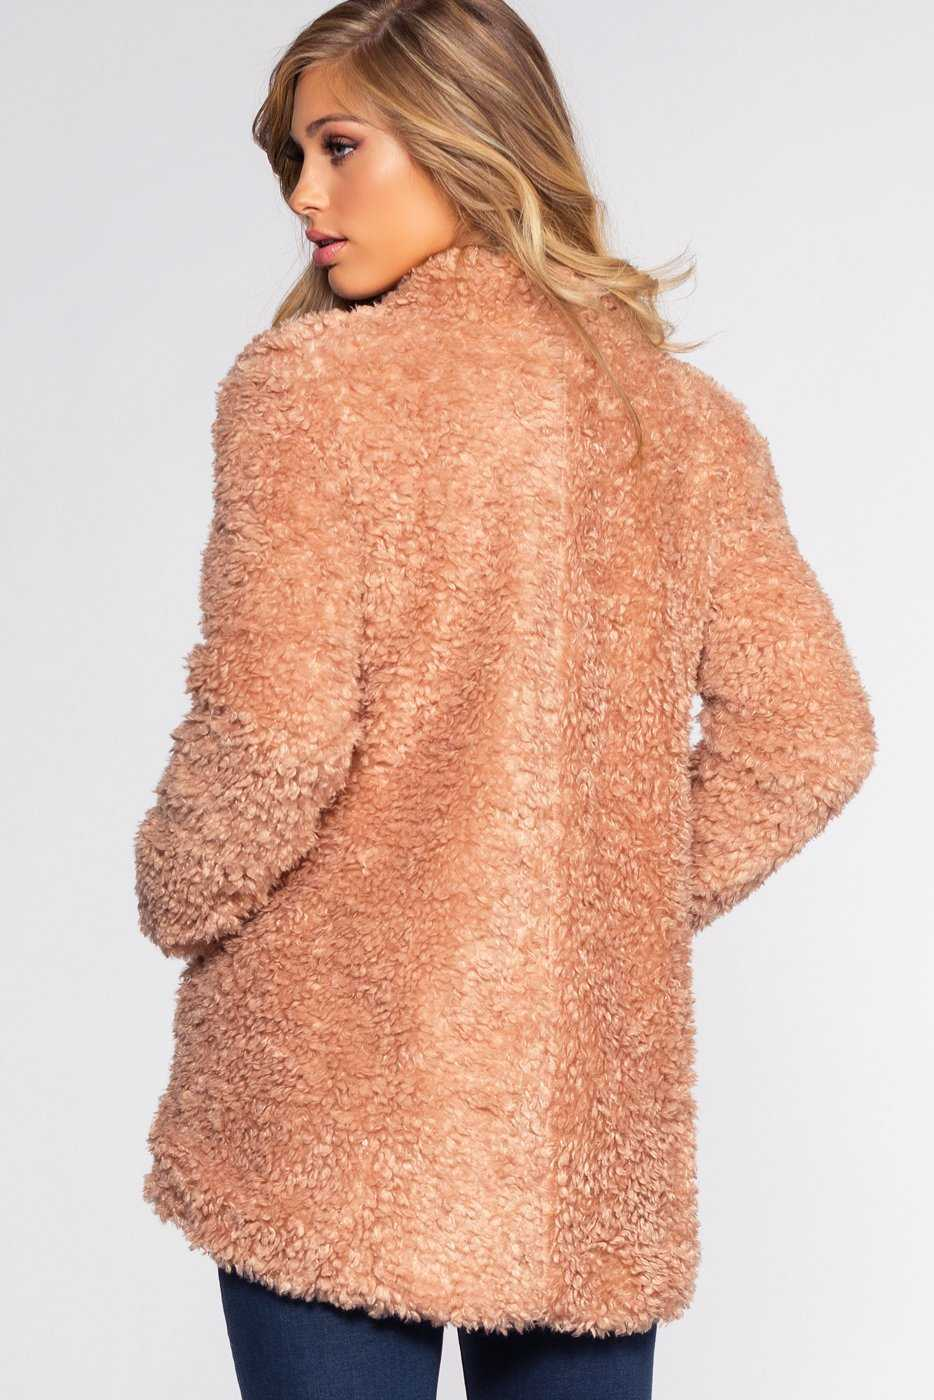 Jackets - Bailey Fur Coat - Apricot